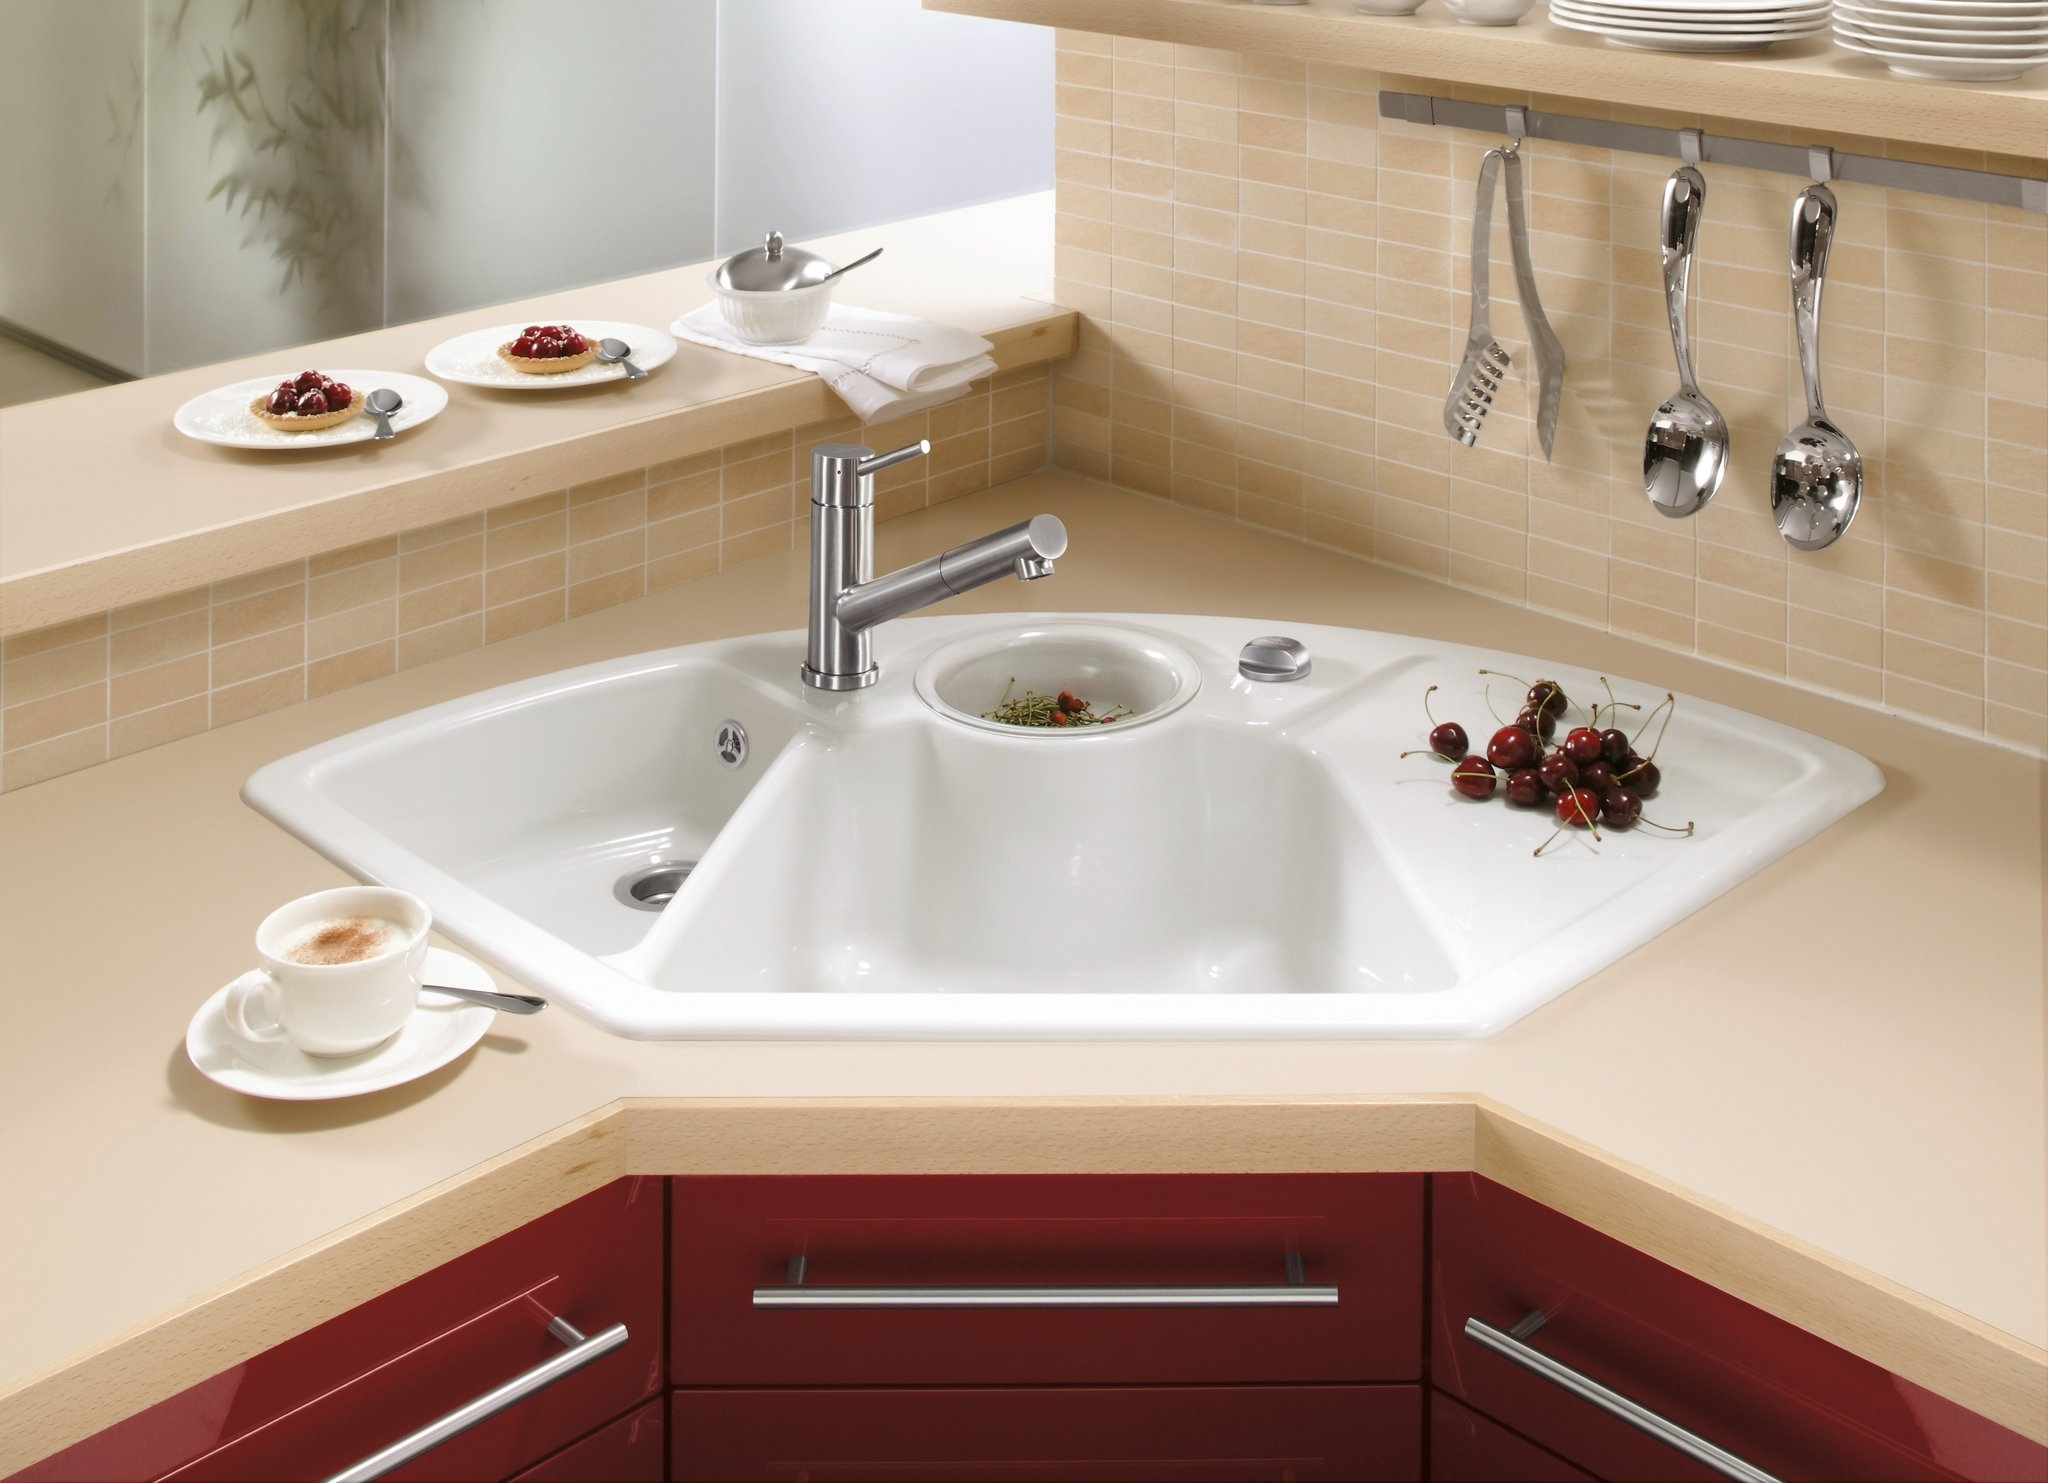 Corner Kitchen Sinks Undermount Ideas On Foter